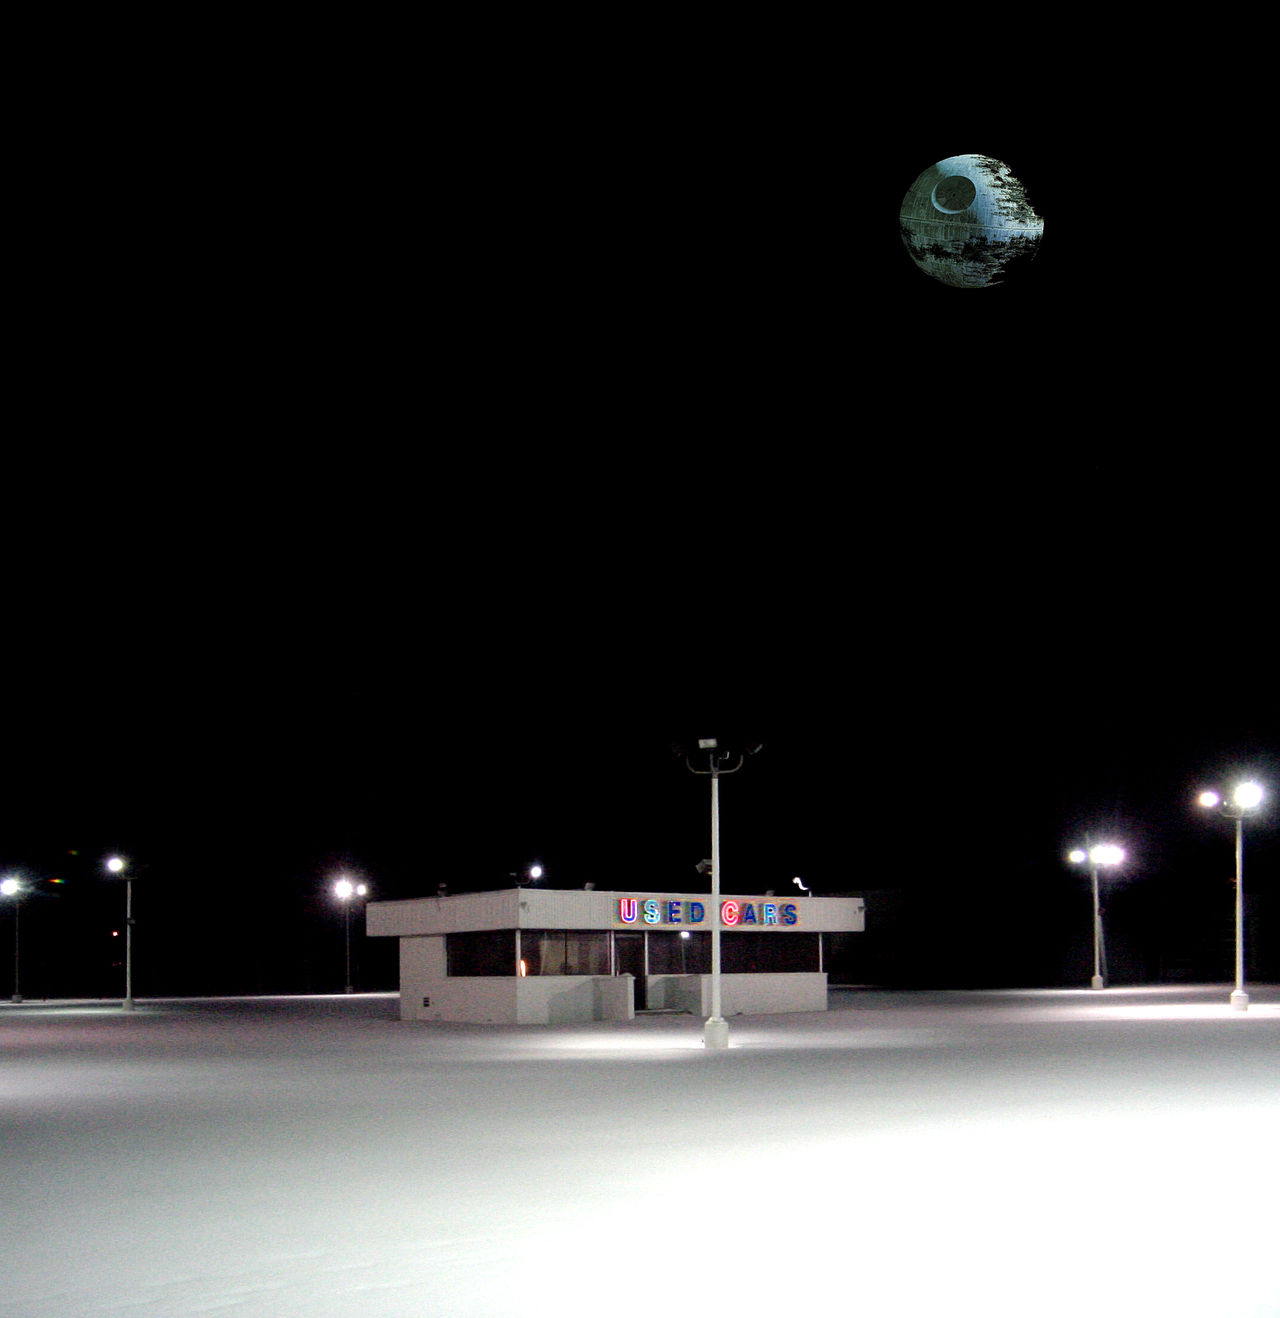 Abandoned Buildings Abandoned Places Death Star Empty Parking Lot Lonely Places Neon Lights Neon Signs Nightphotography Parking Lot, Empty Snow Star Wars Used Cars Winter